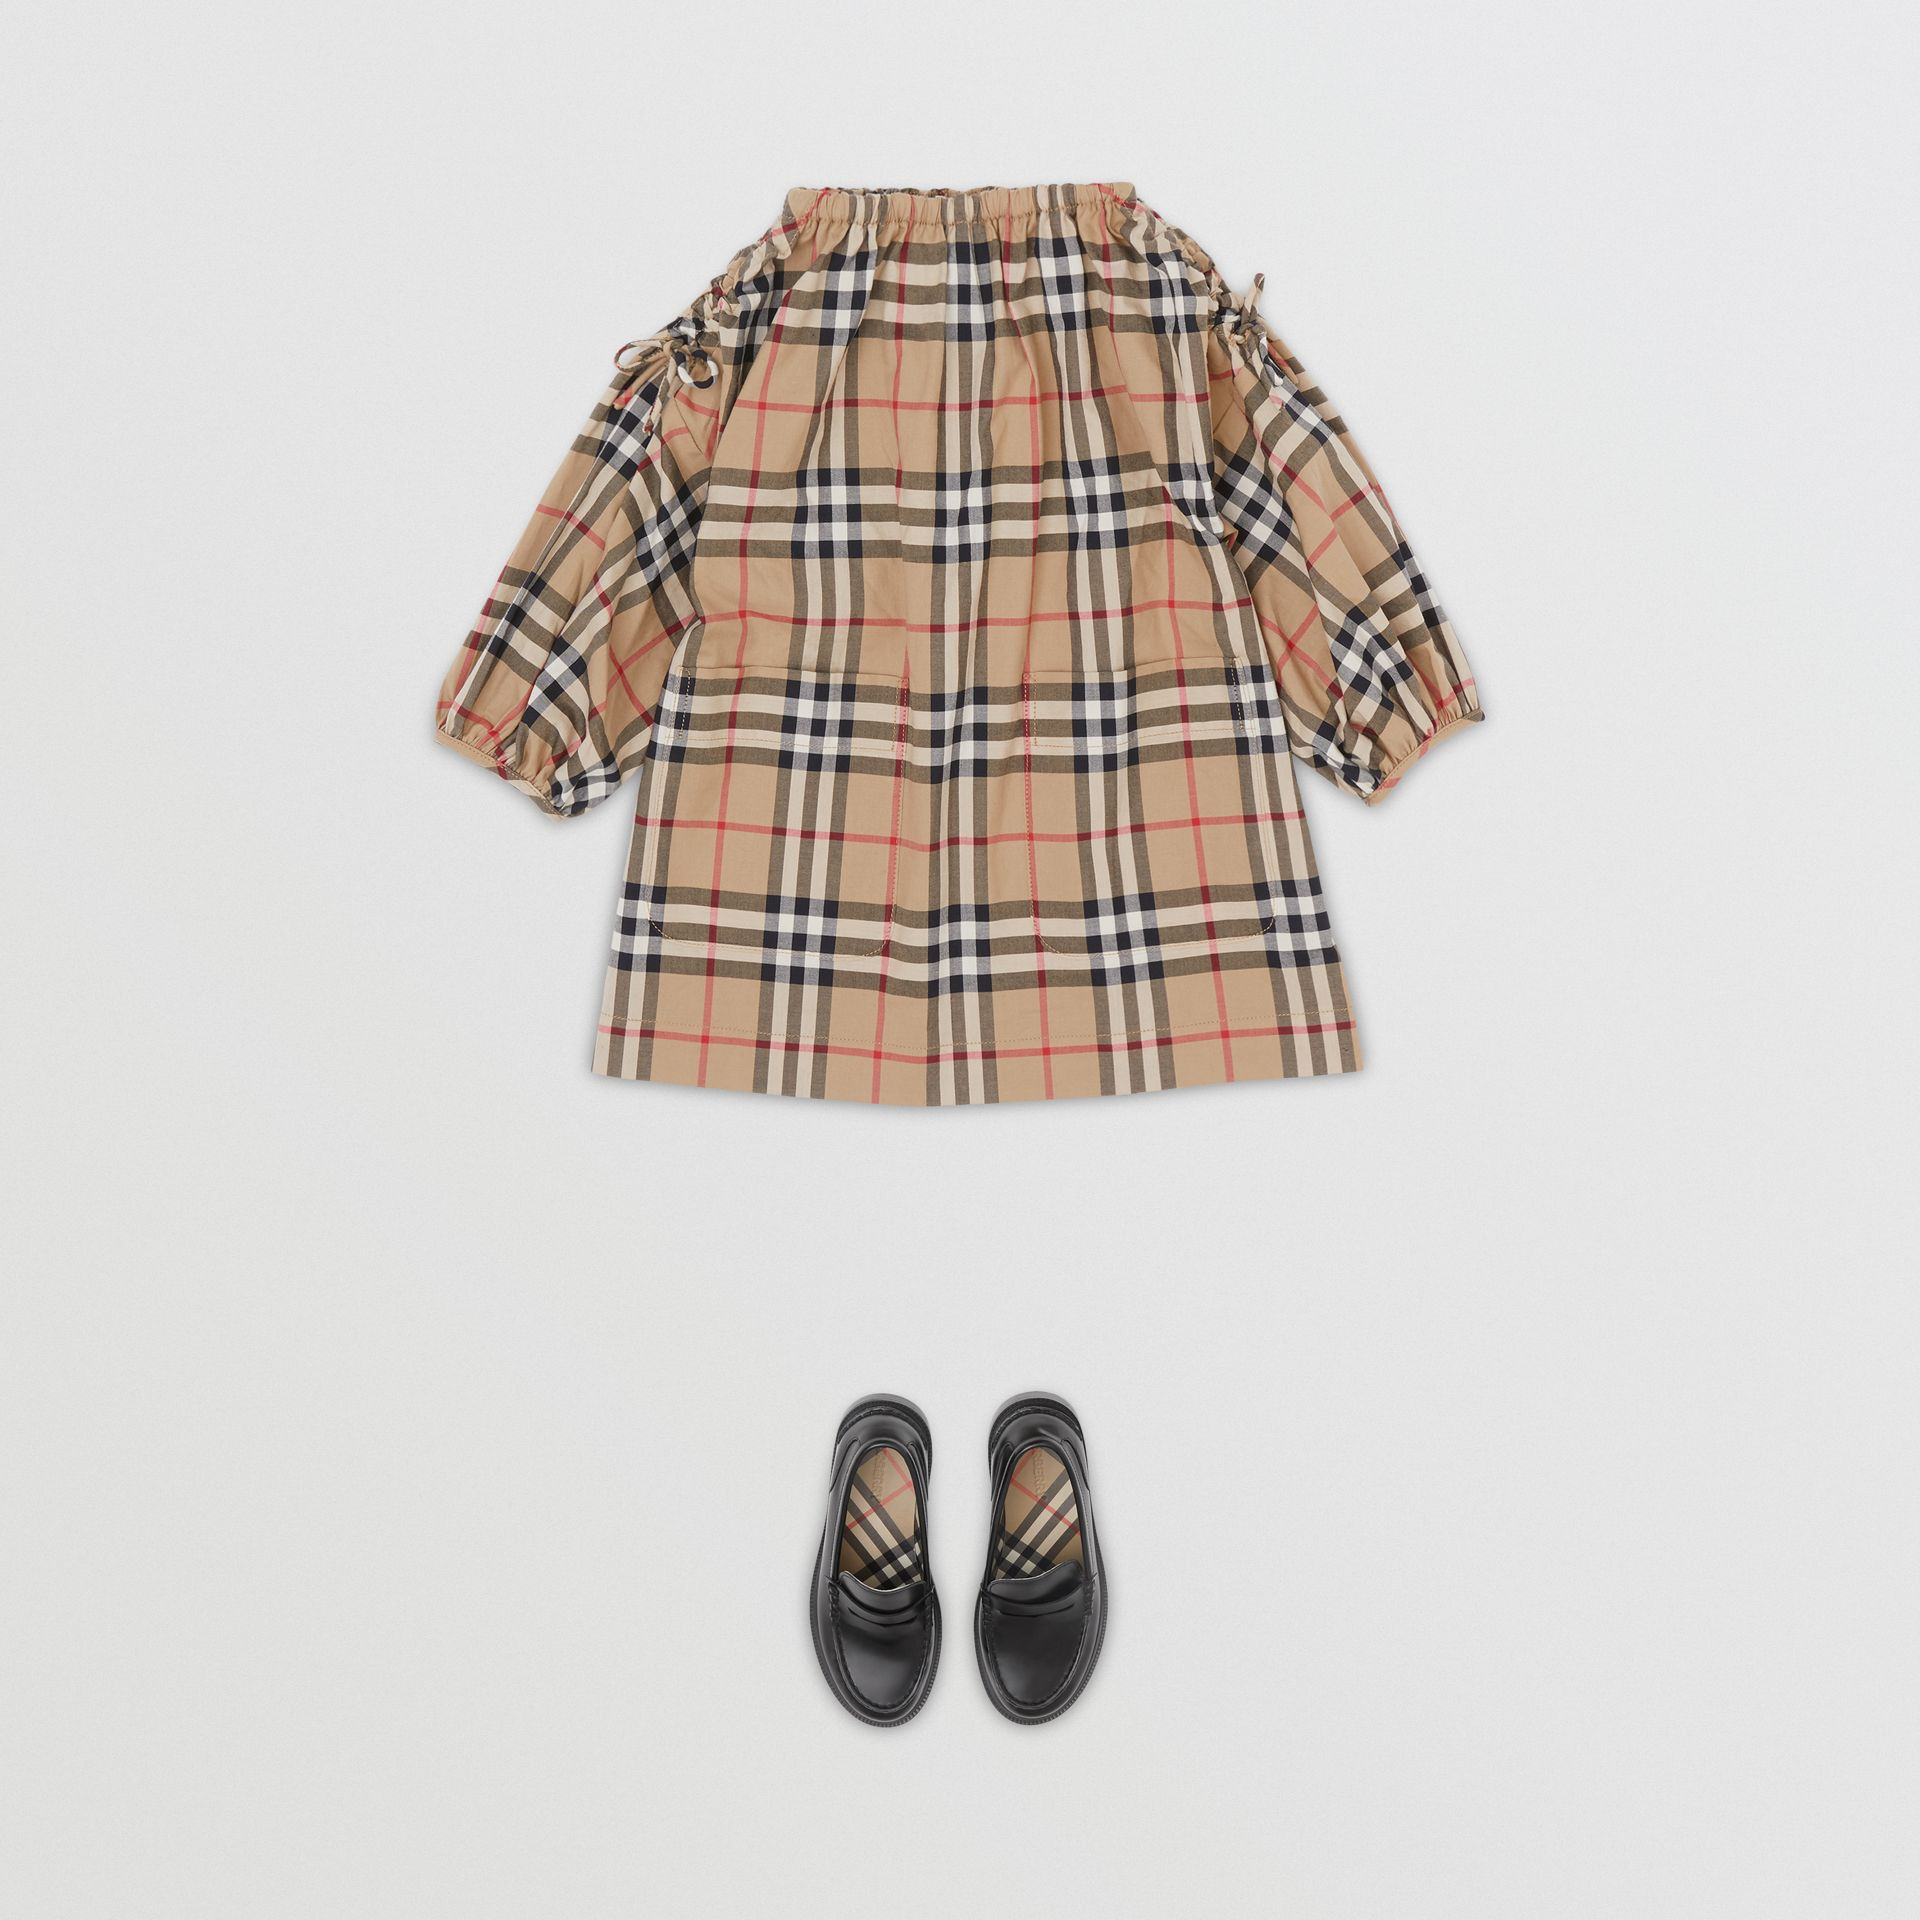 Gathered Sleeve Vintage Check Cotton Dress in Archive Beige - Children | Burberry Canada - gallery image 2